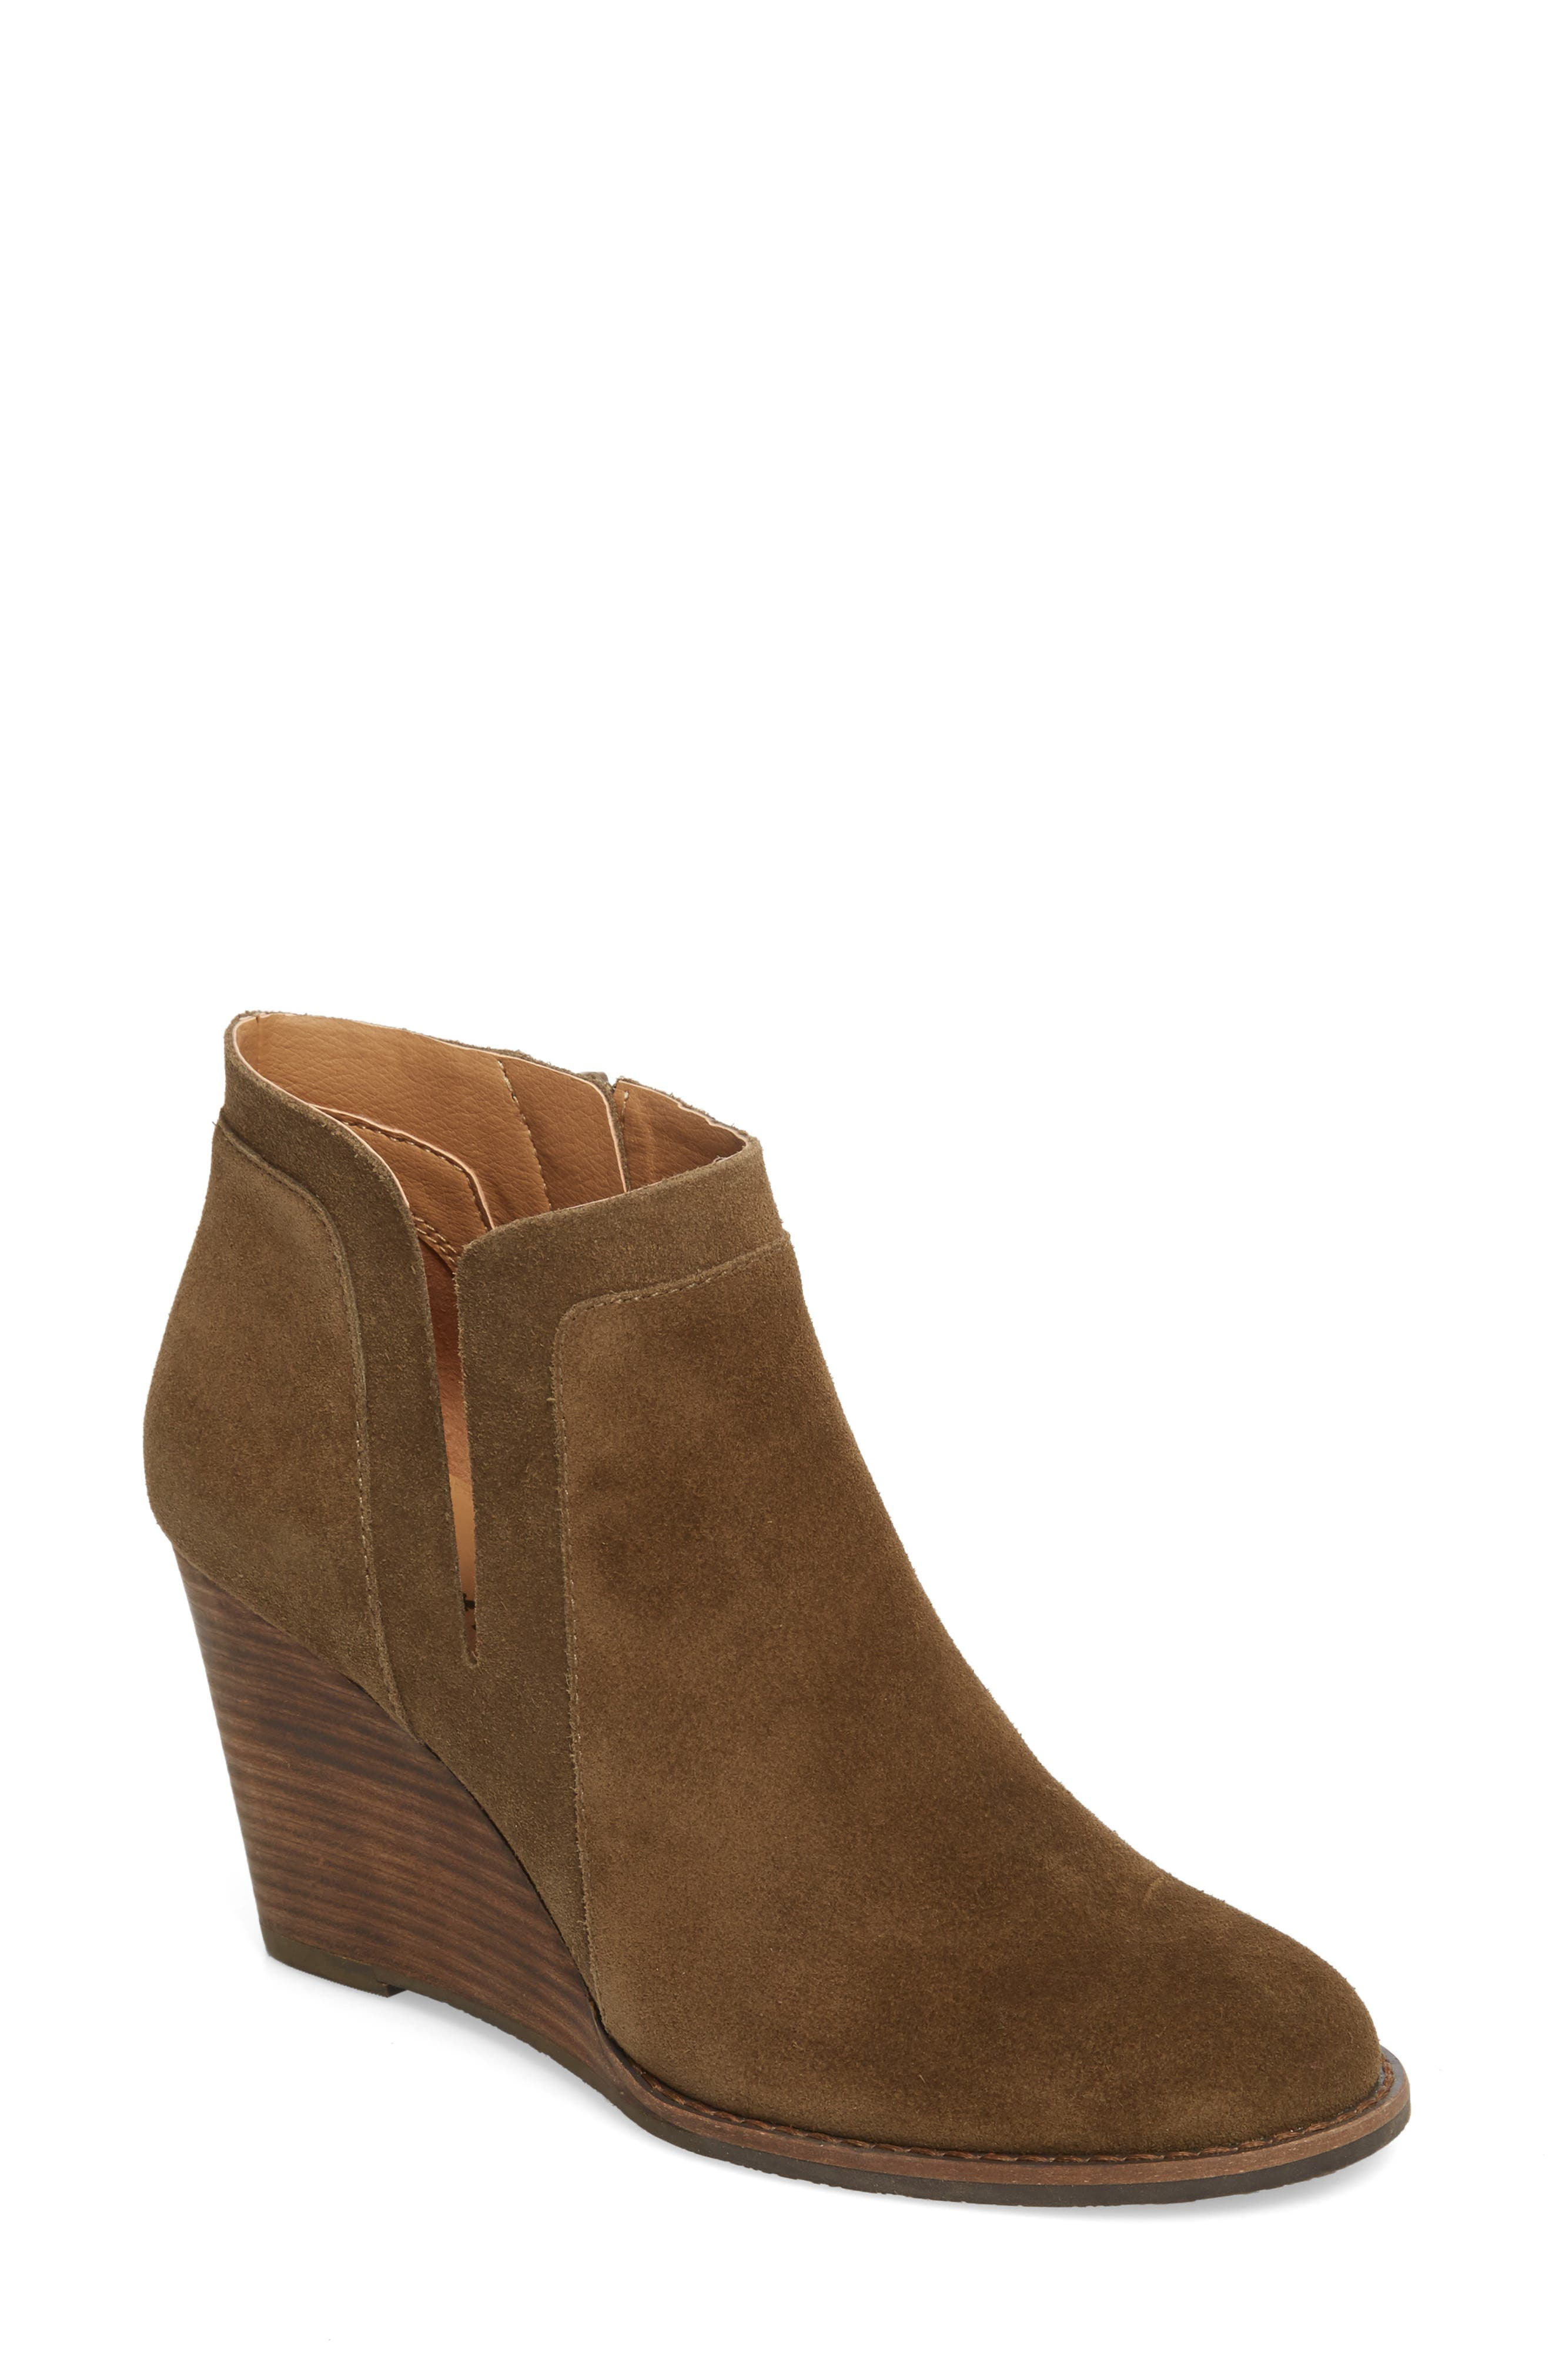 Lucky Brand Yabba Wedge Bootie- Green